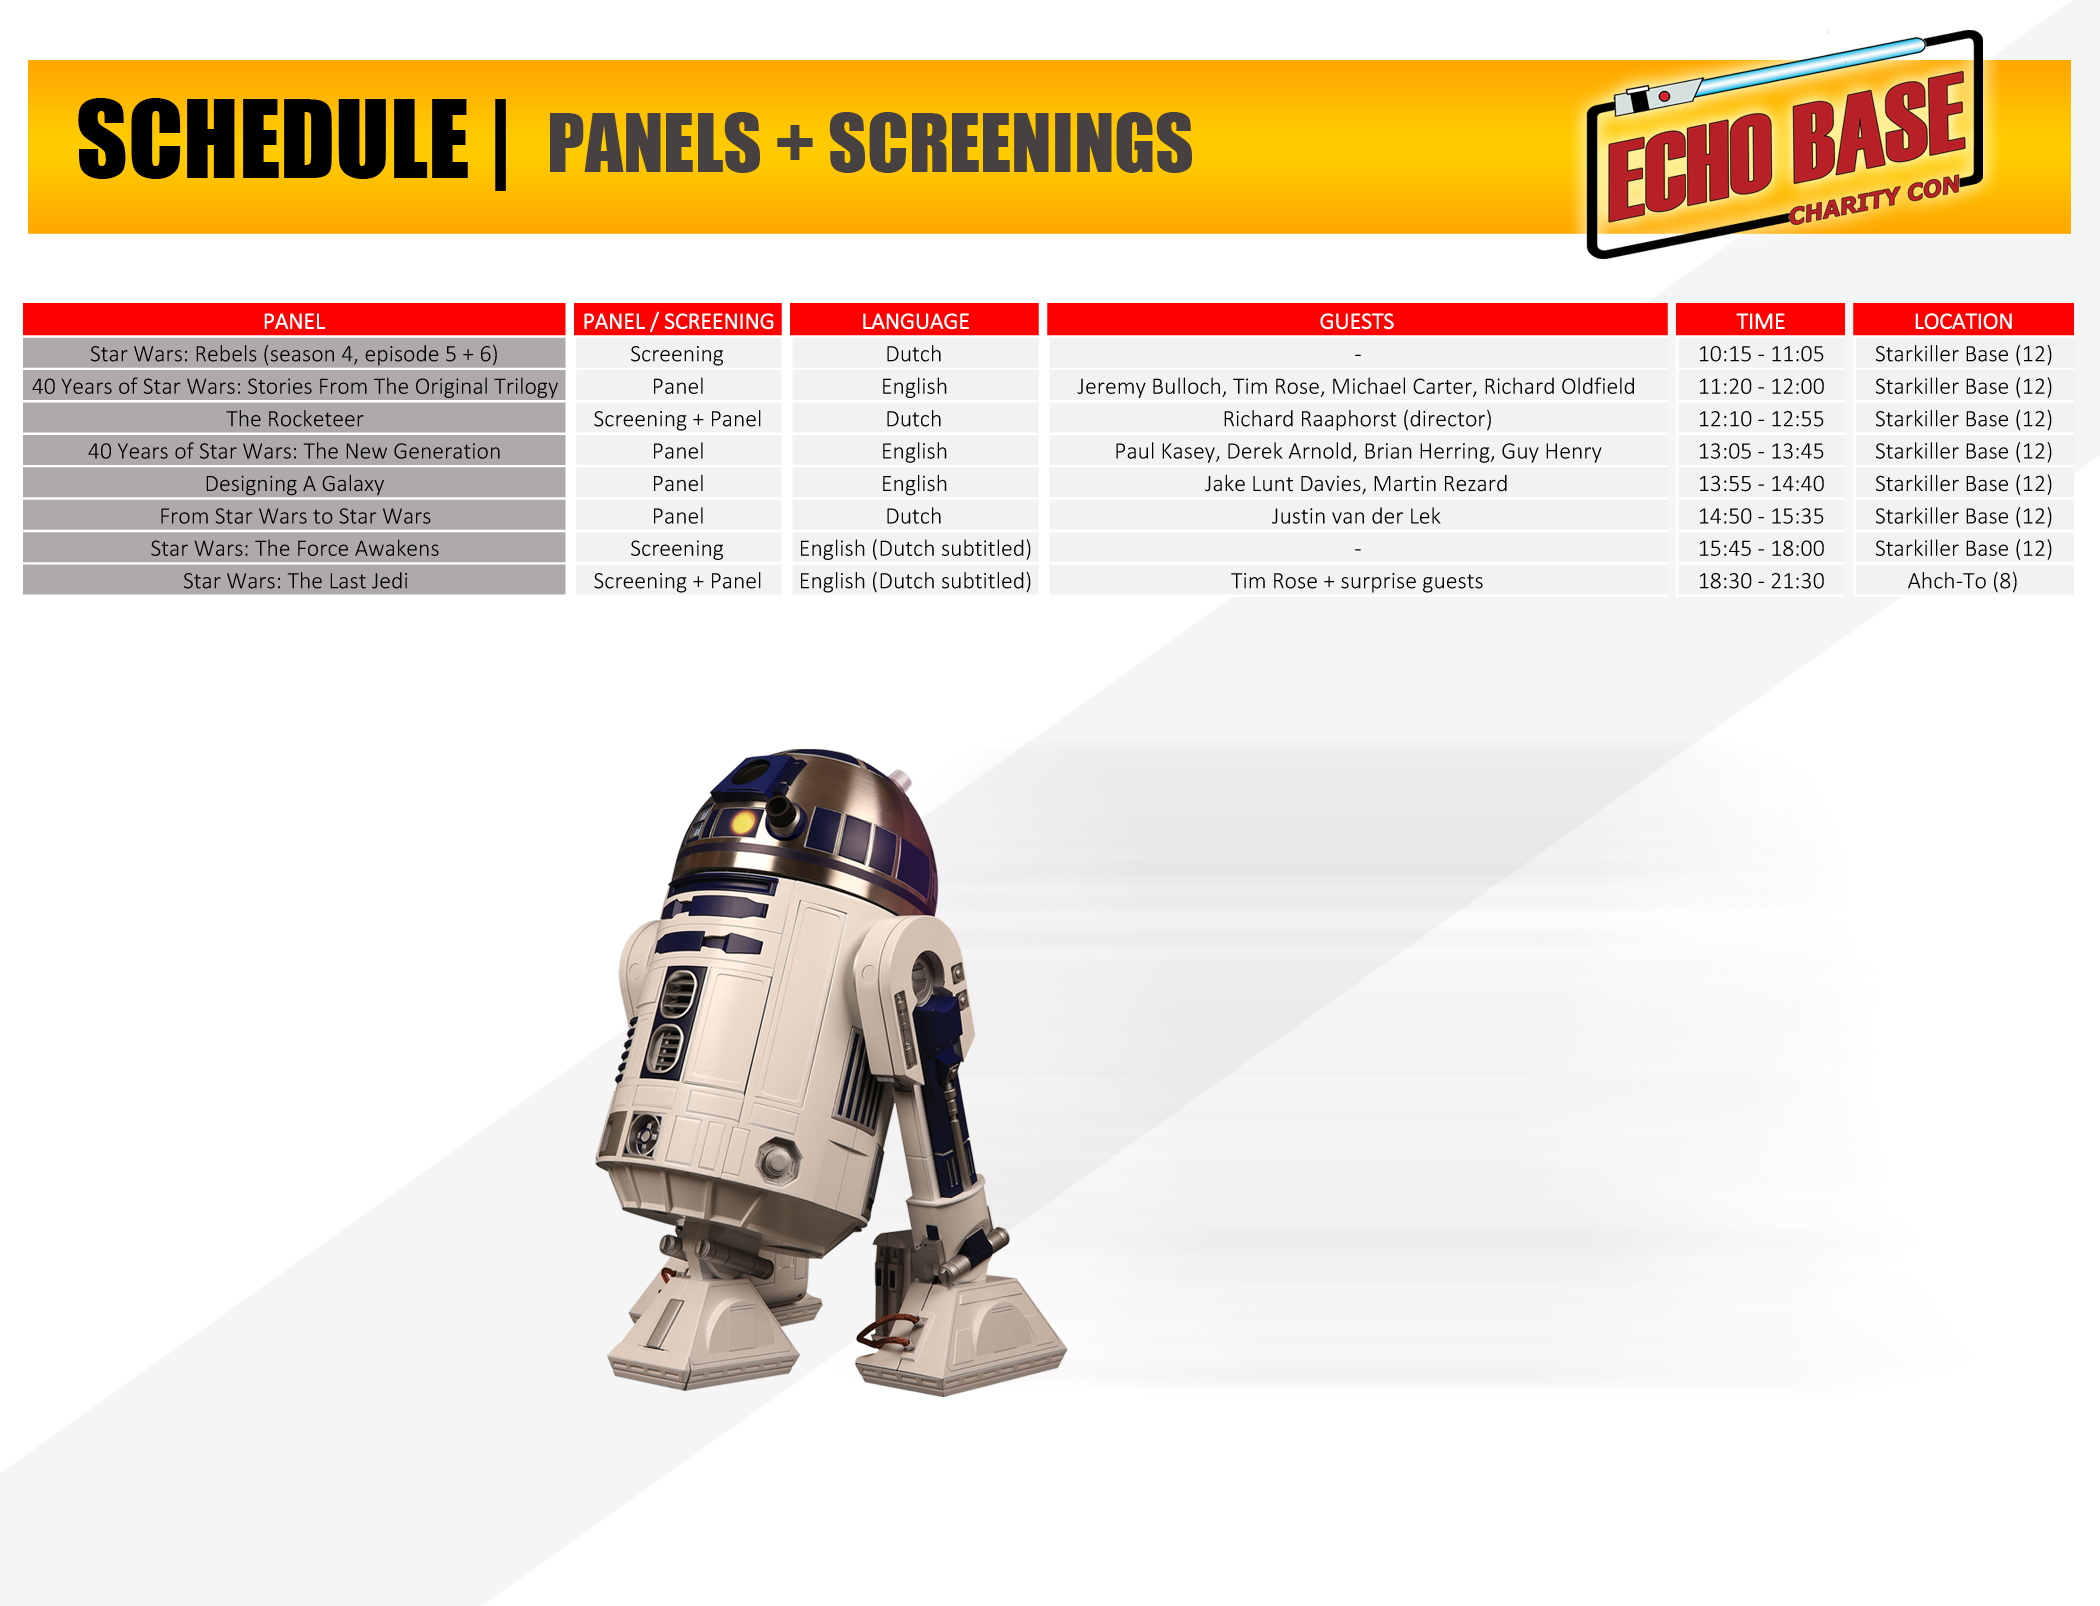 Panels + screenings